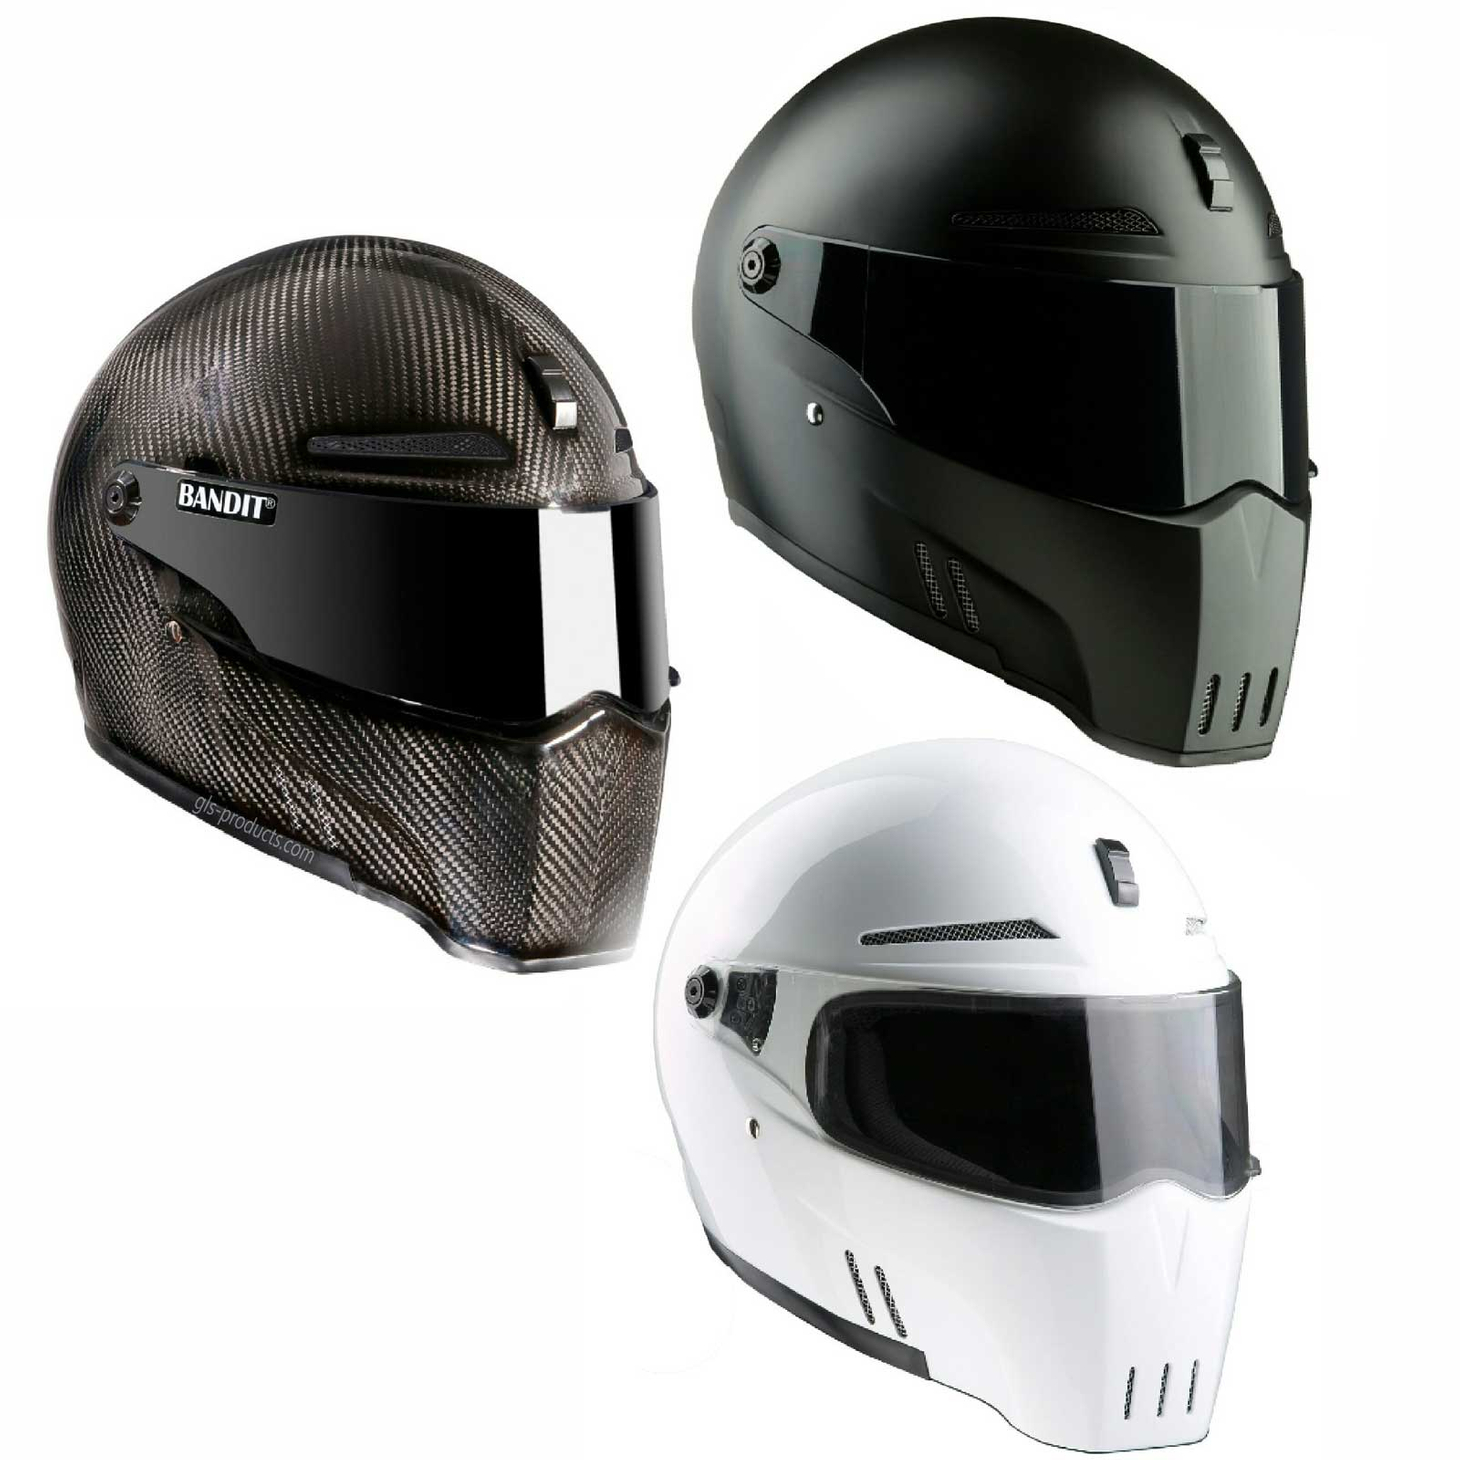 Bandit - New Original Alien II - Motorcycle Helmet - for Streetfighter – Picture 1